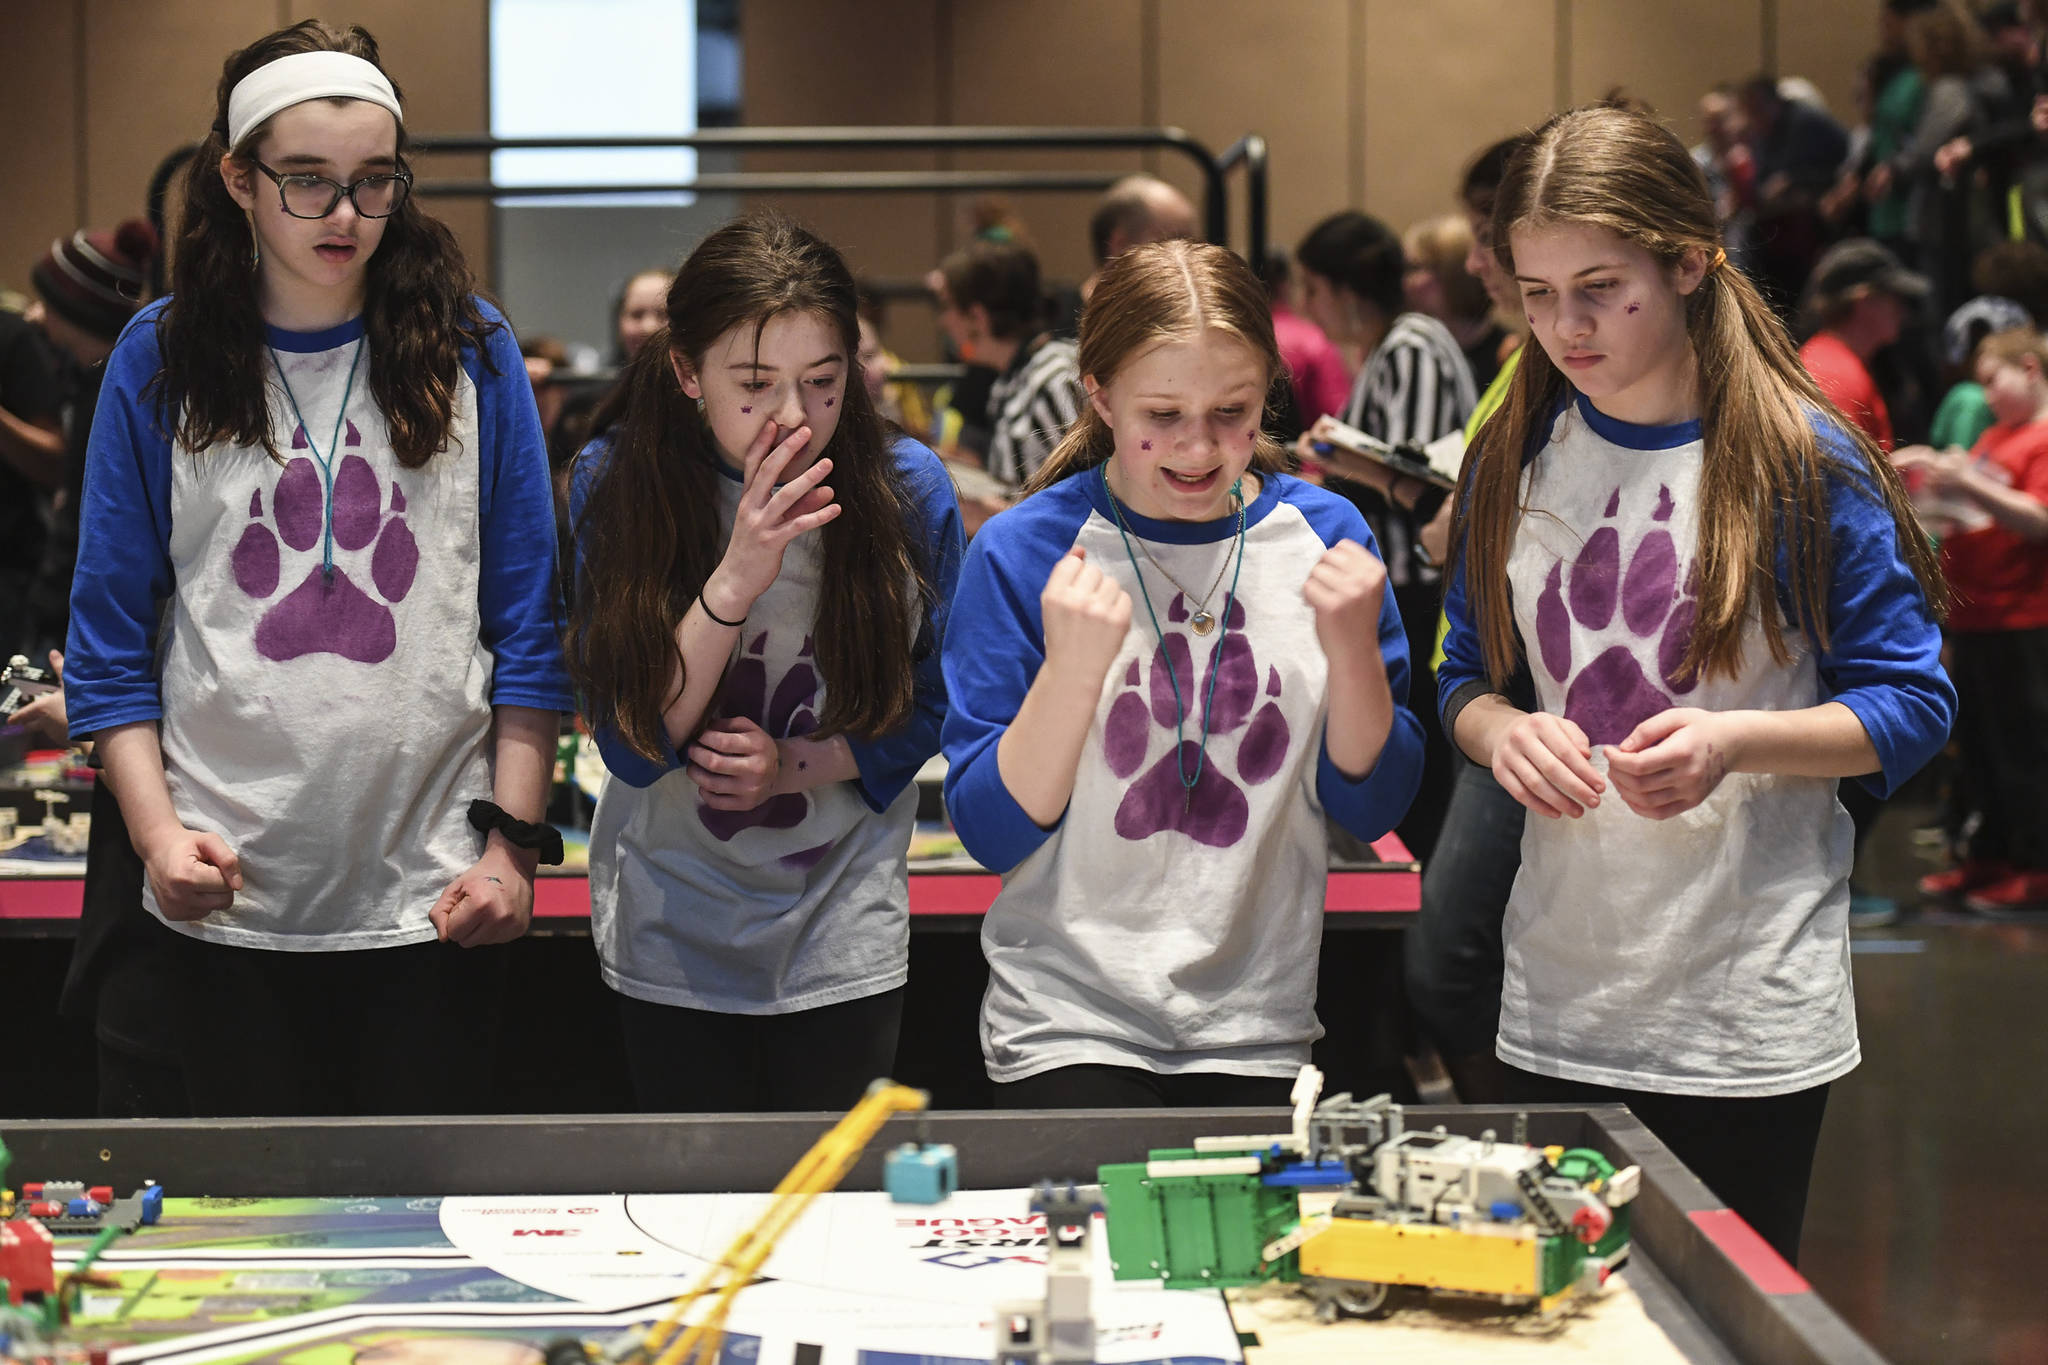 Members of the Tundra Wolves, Rosina Wolfenberger, left, Jerralyn White, Eva Miller and Kennedy White, right, cheer on their robot as they complete in the First Lego League Challenge during the Juneau Robot Jamboree at Centennial Hall on Saturday, Dec. 14, 2019. Twenty teams, two remotely, competed in the First Lego League and four more in the Junior League. the robot performance is one of four parts to the contest. The students are also graded on teamwork, a research project and robot design. Top teams will earn entry to the Alaska State Championship on Feb. 7-8, 2020, at Colony High School. (Michael Penn | Juneau Empire)